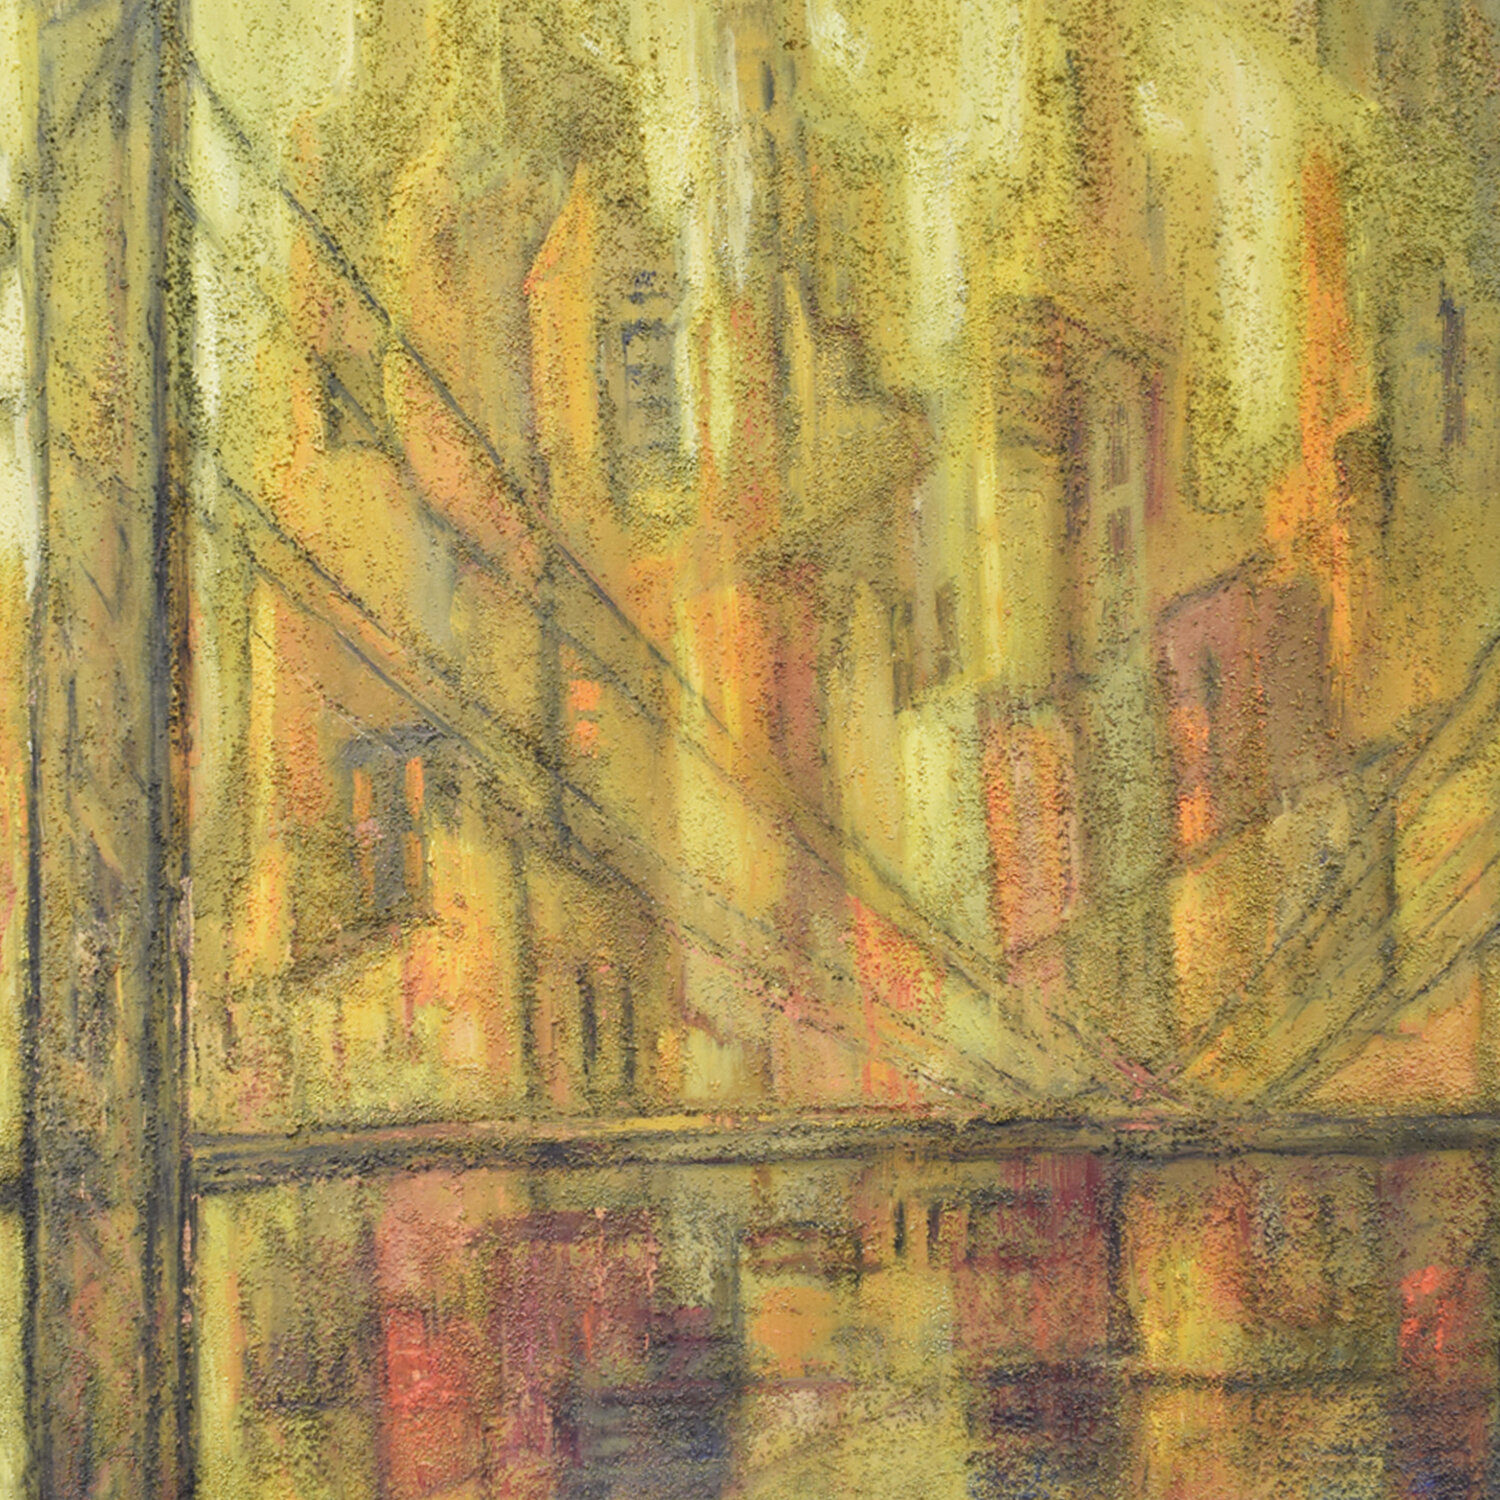 Bishop 65 NY Sunset mixedmedia painting149 dtl cls.jpg